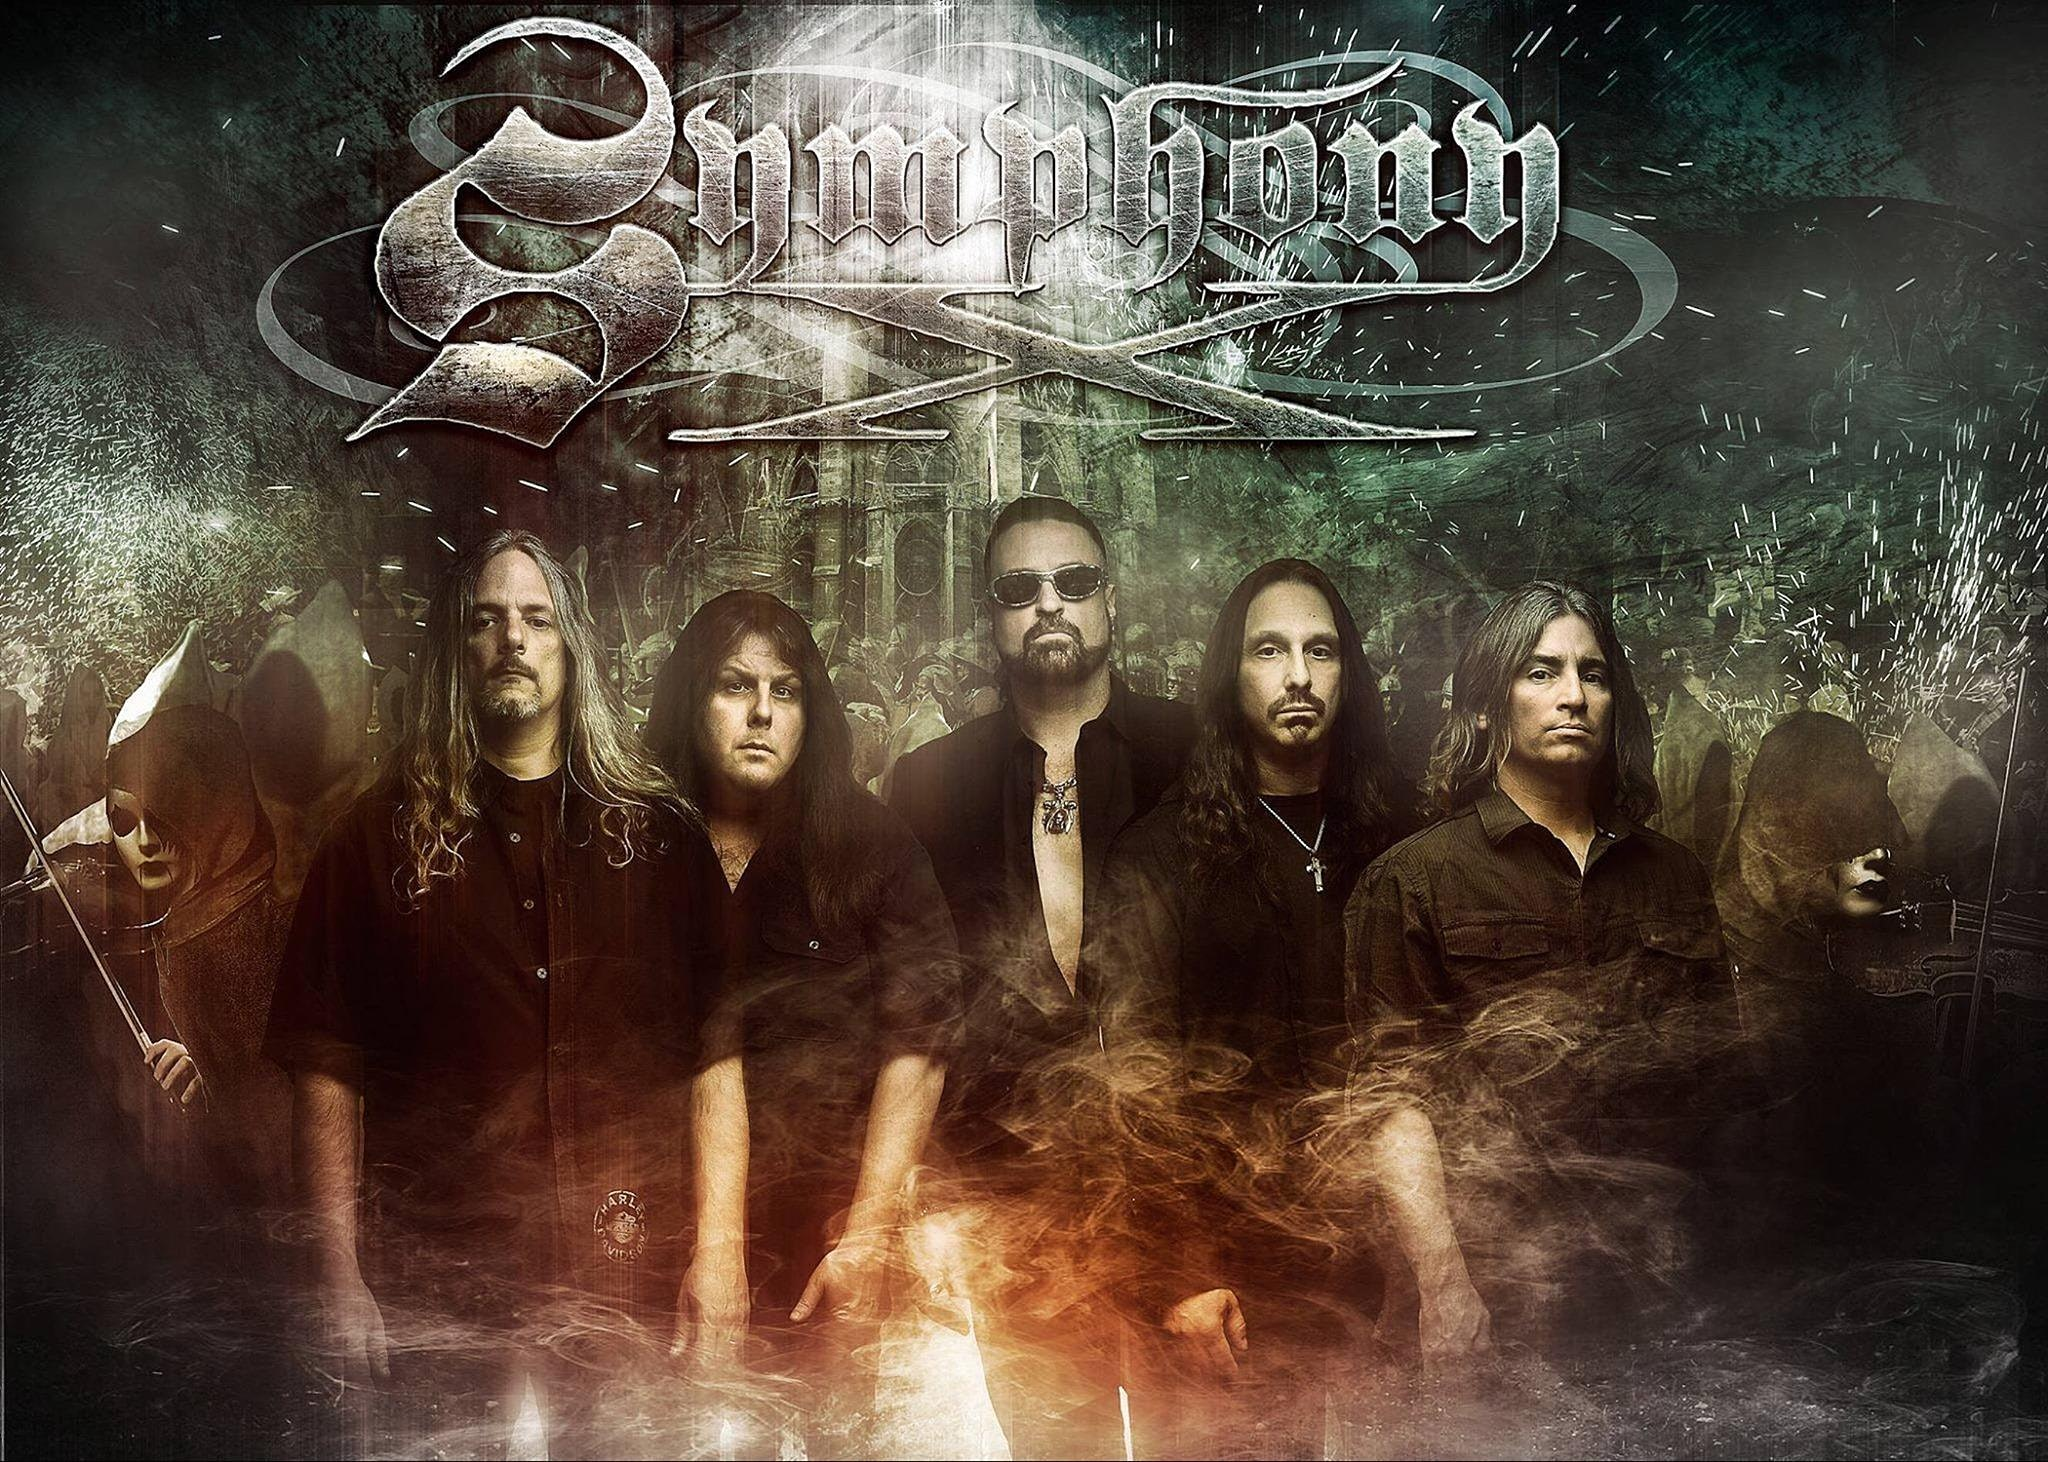 Symphony X, Primal Fear, and Firewind in south Florida.